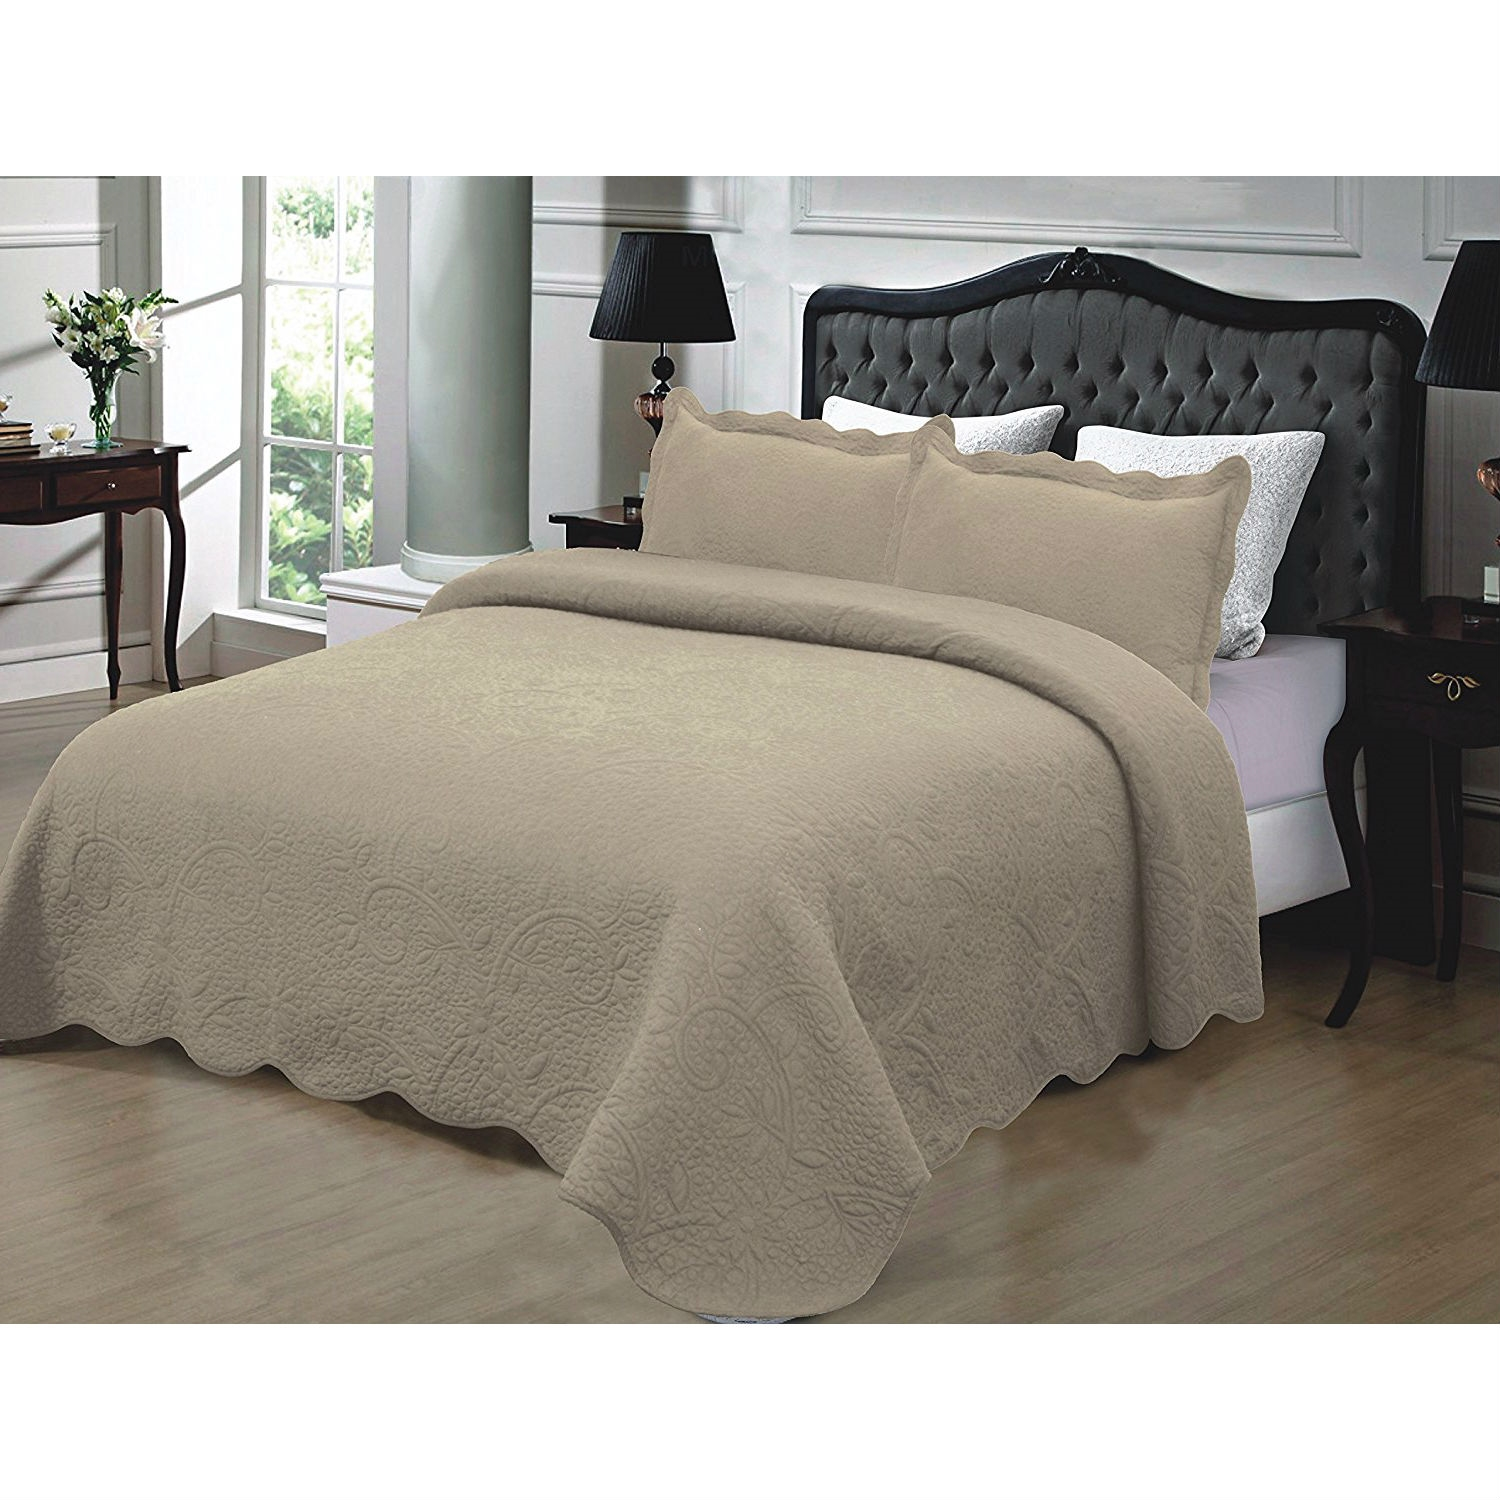 California King 3 Piece Quilted Bedspread 100 Cotton In Taupe